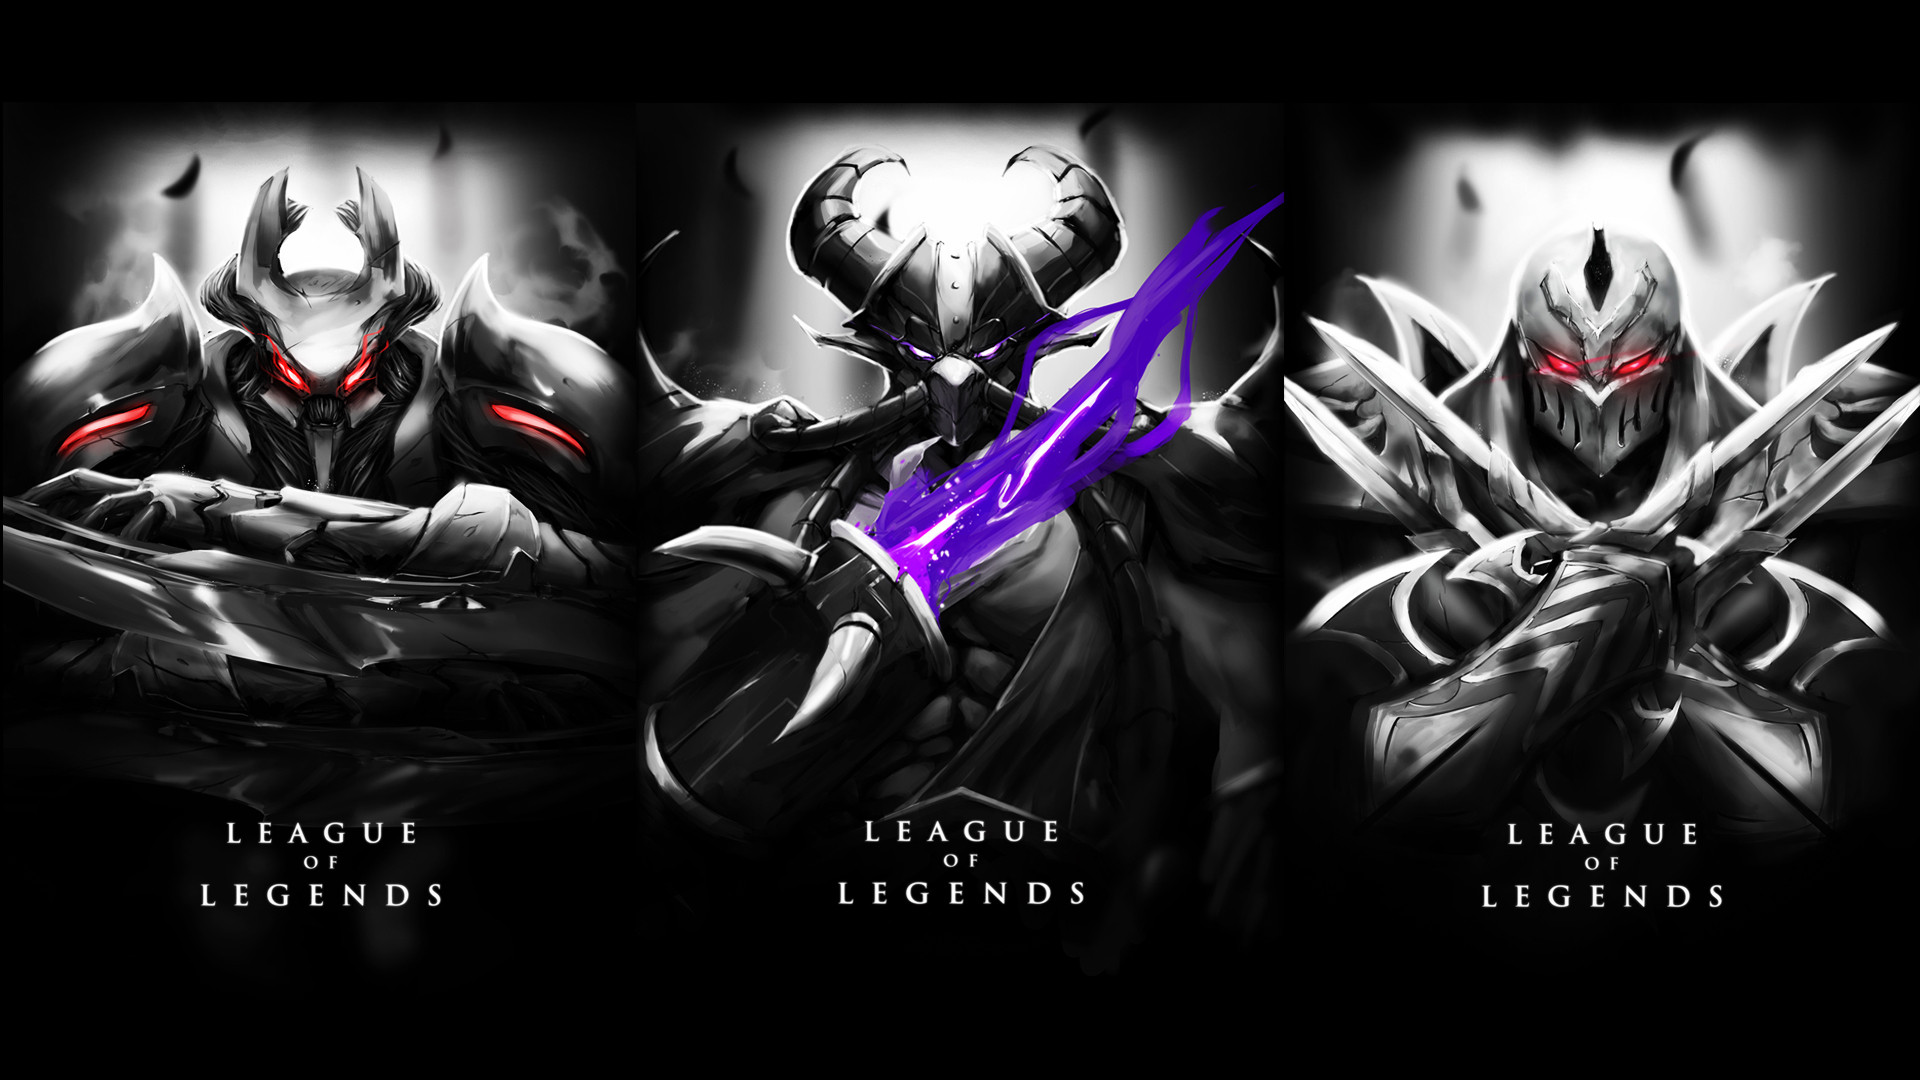 Cool League Of Legends Wallpapers